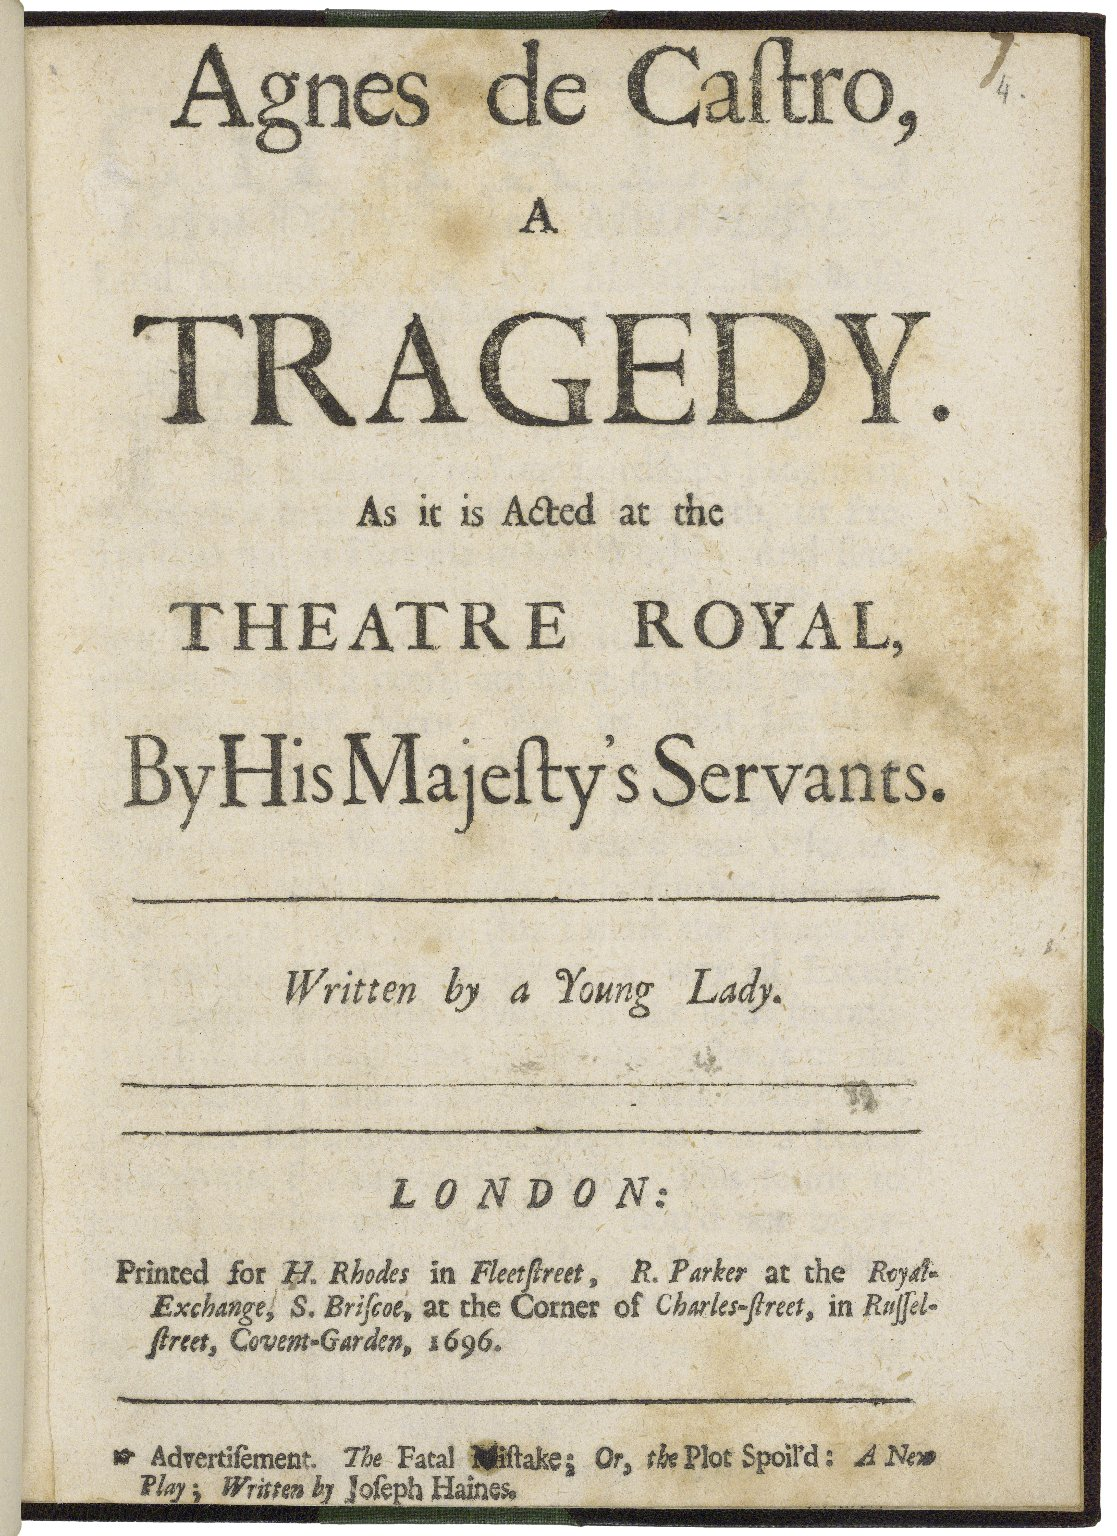 Agnes de Castro, a tragedy. As it is acted at the Theatre Royal, by His Majesty's Servants· Written by a young lady.